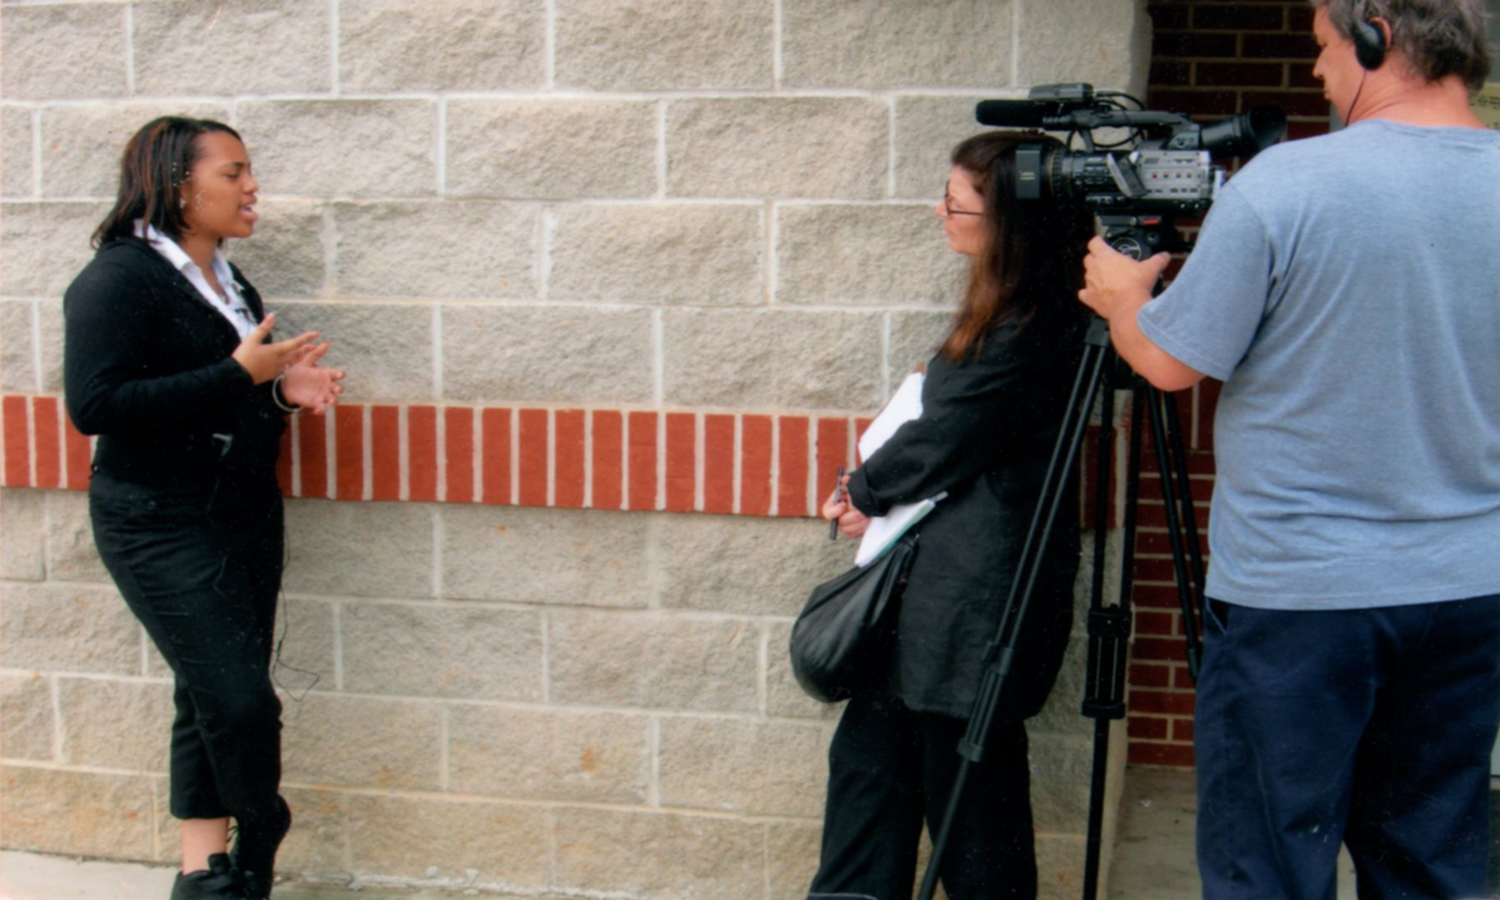 Jaffe on set interviewing a student at Fairfield Preparatory High School in Fairfield, Alabama, about the lasting importance of Harper Lee's classic novel.